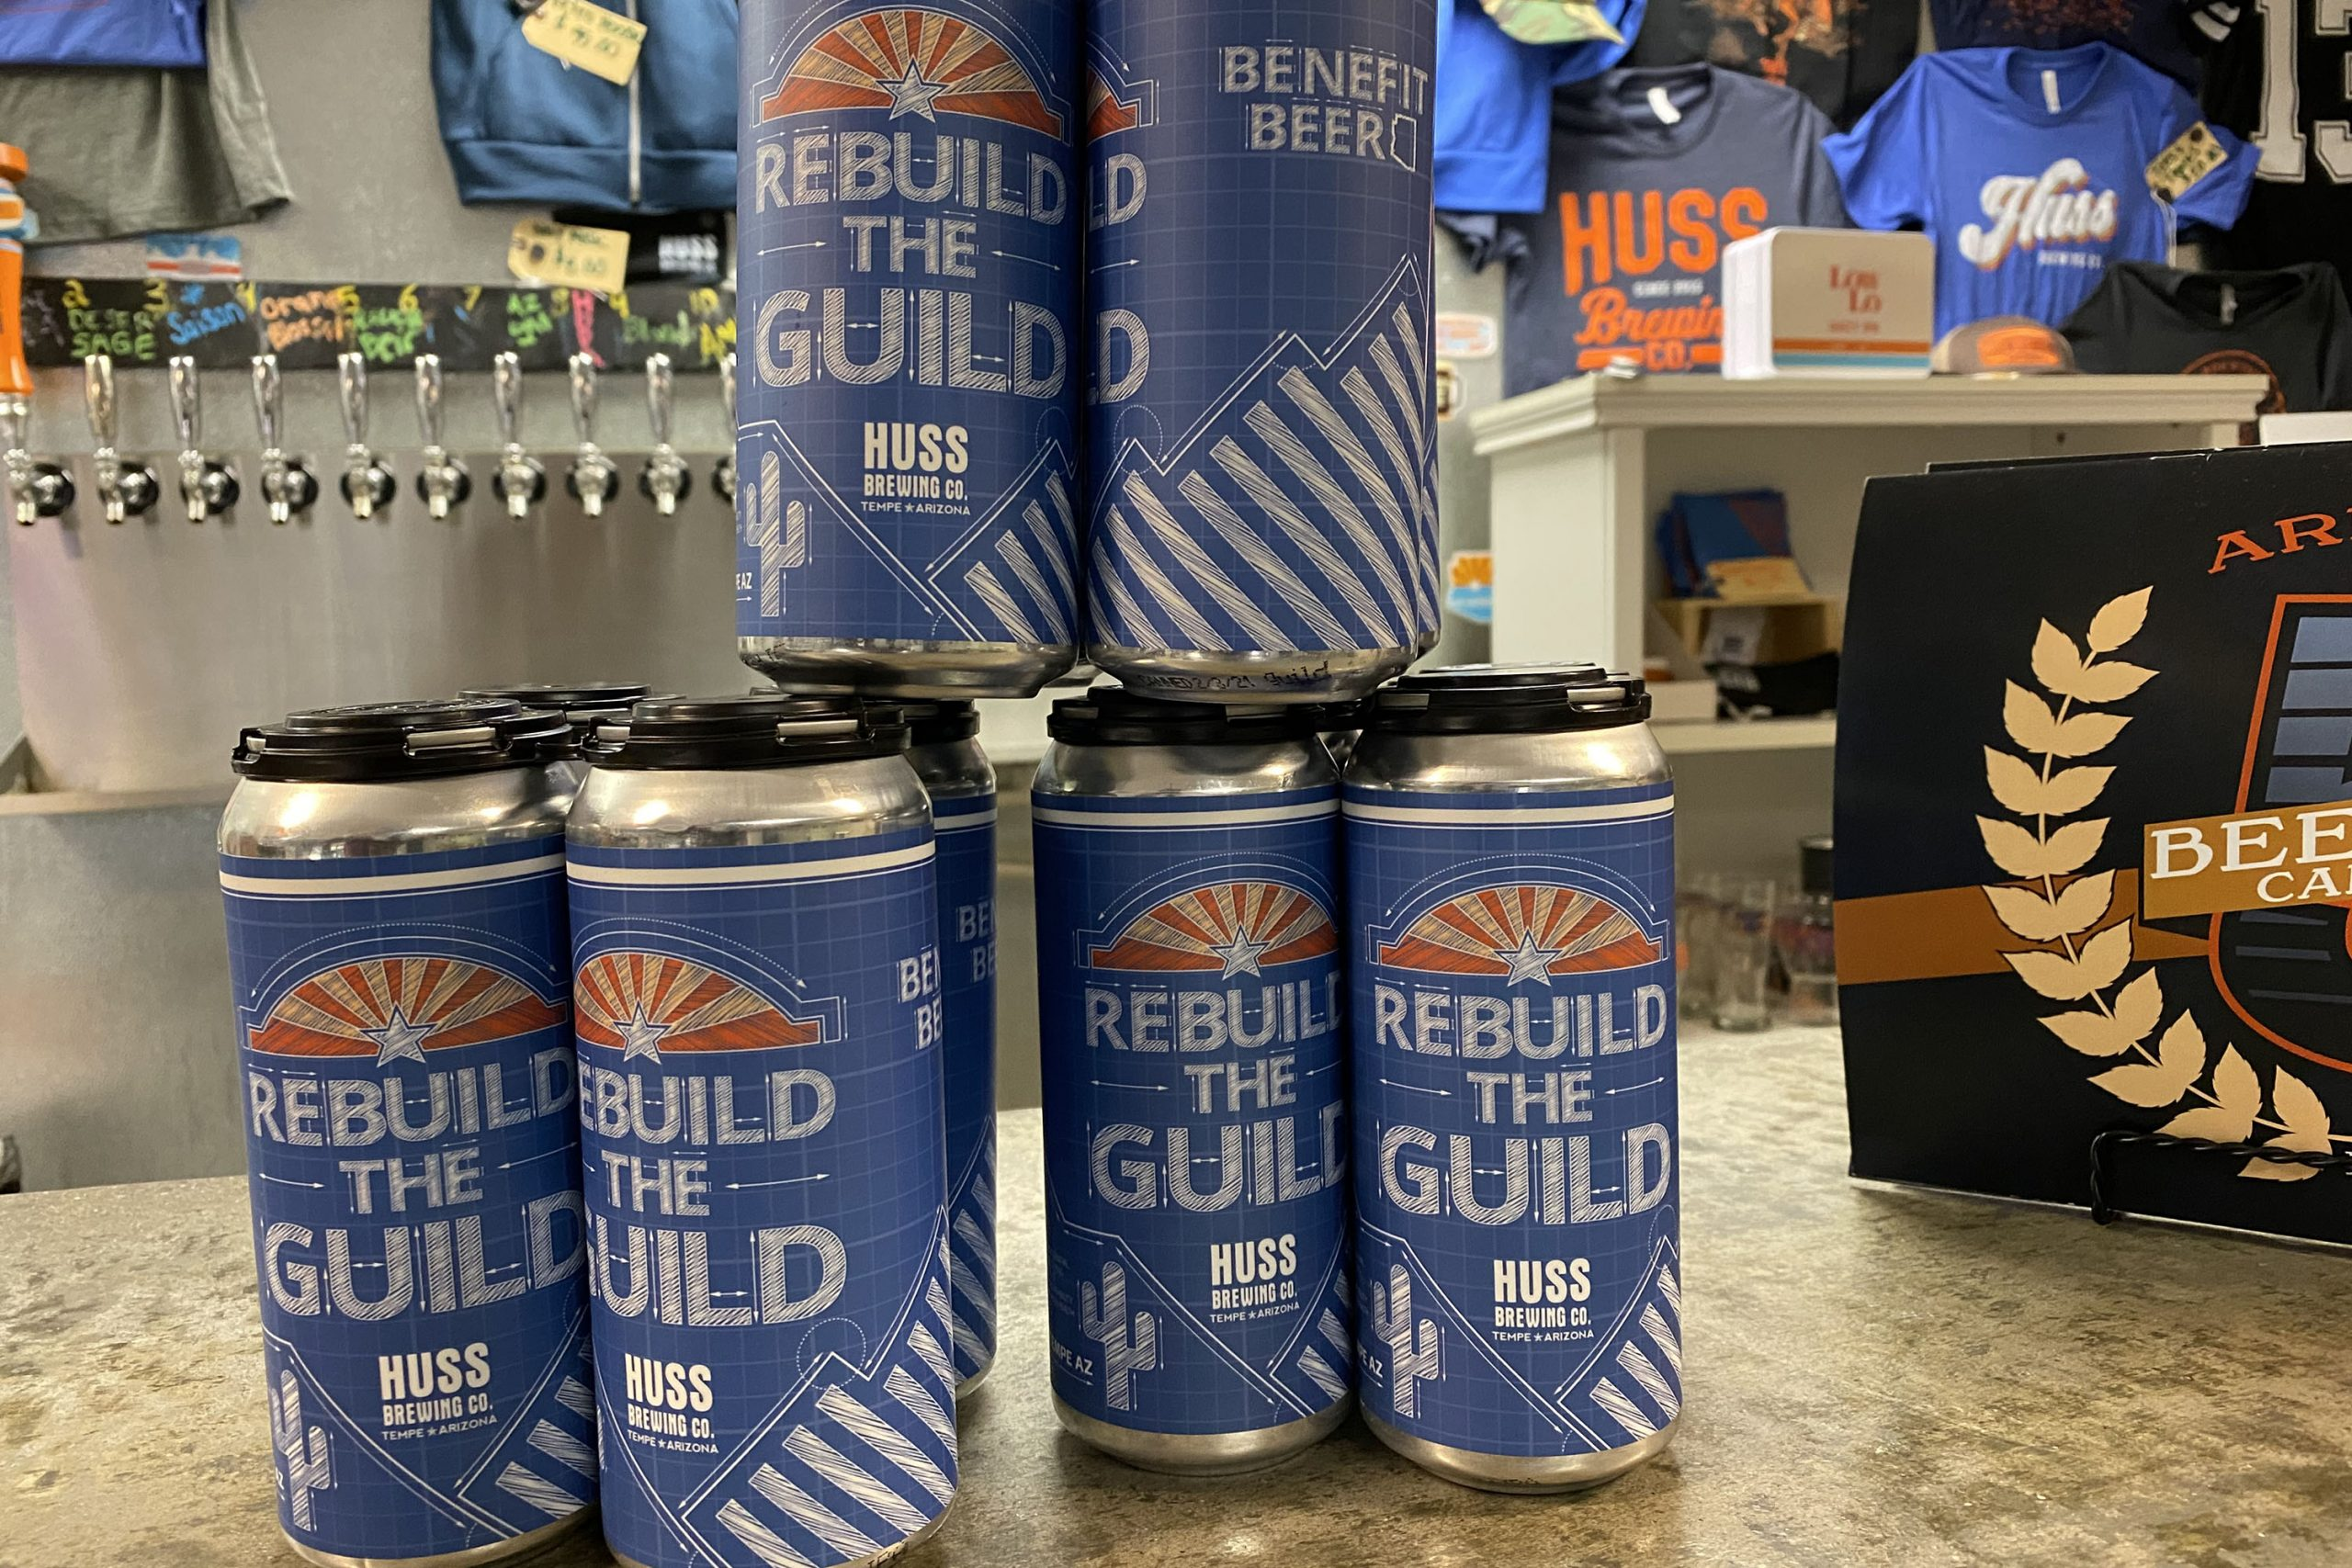 Rebuild the Guild Tropical Hazy IPA from Huss Brewing